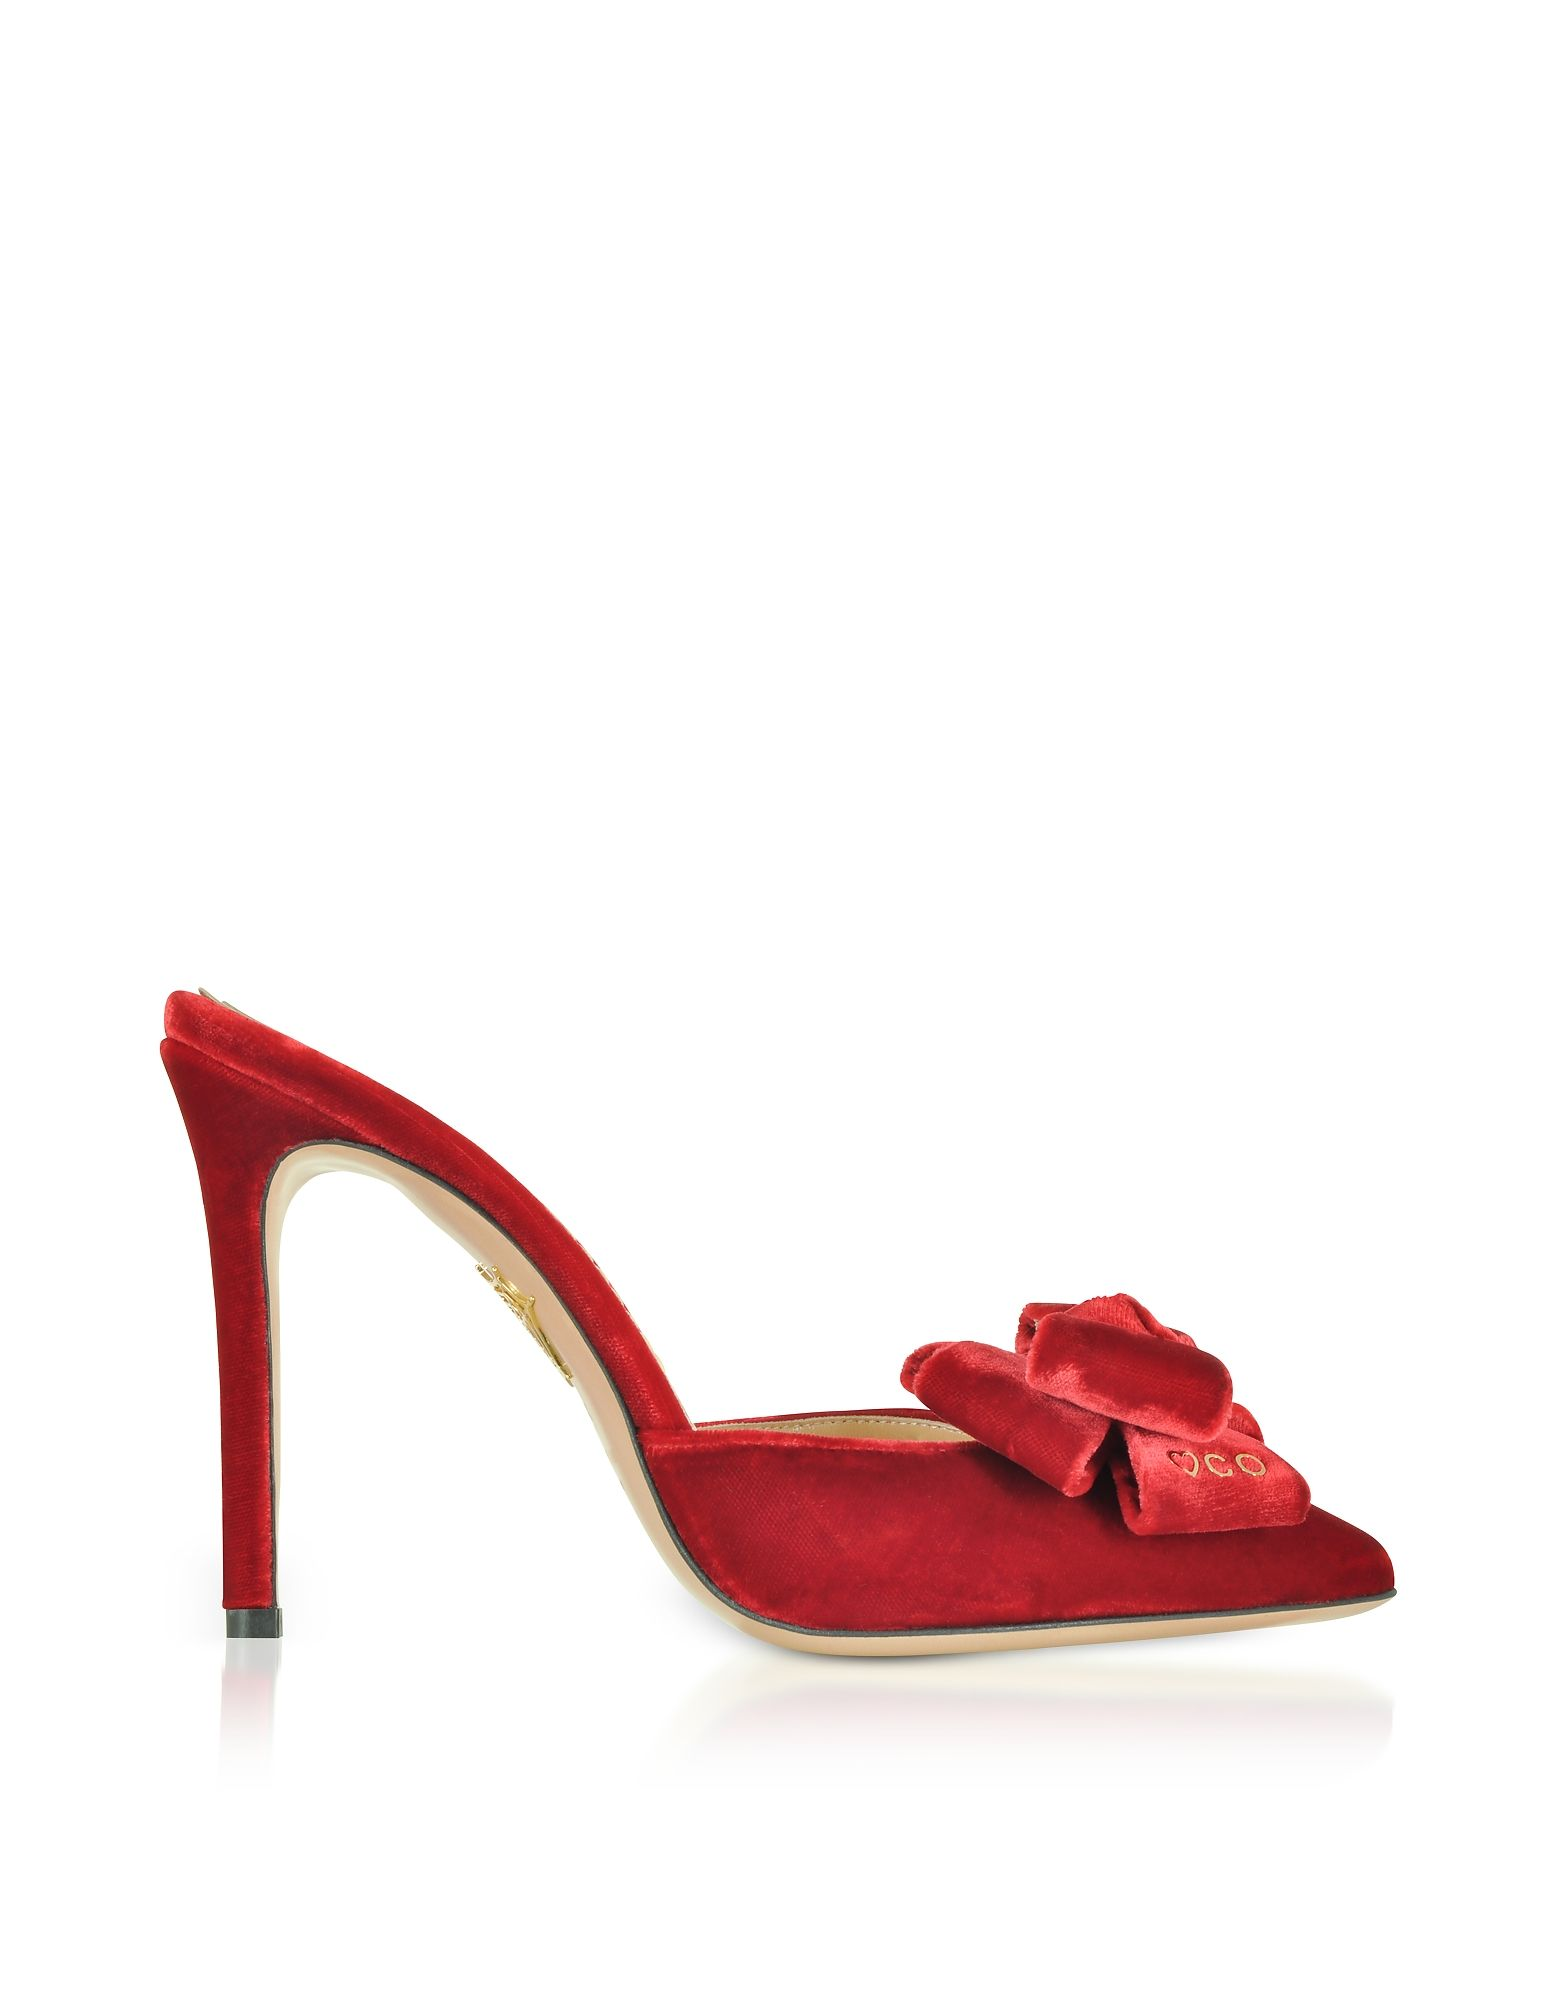 Charlotte Olympia Rose Red Velvet High Heel Bow Mules